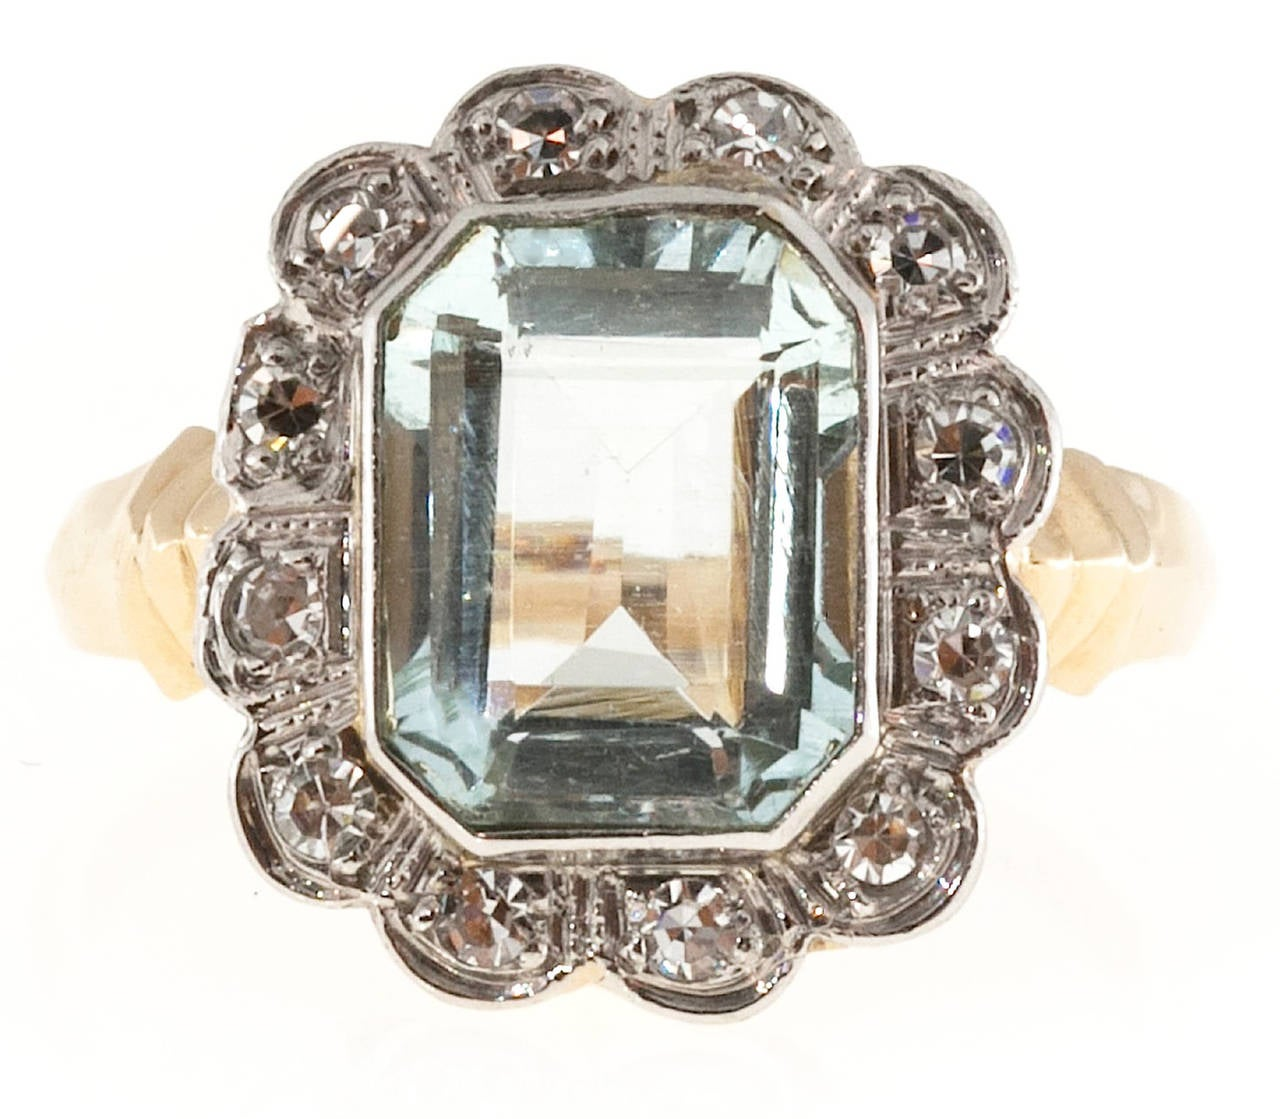 Emerald Cut Aquamarine Diamond Gold Palladium Cocktail Ring For Sale